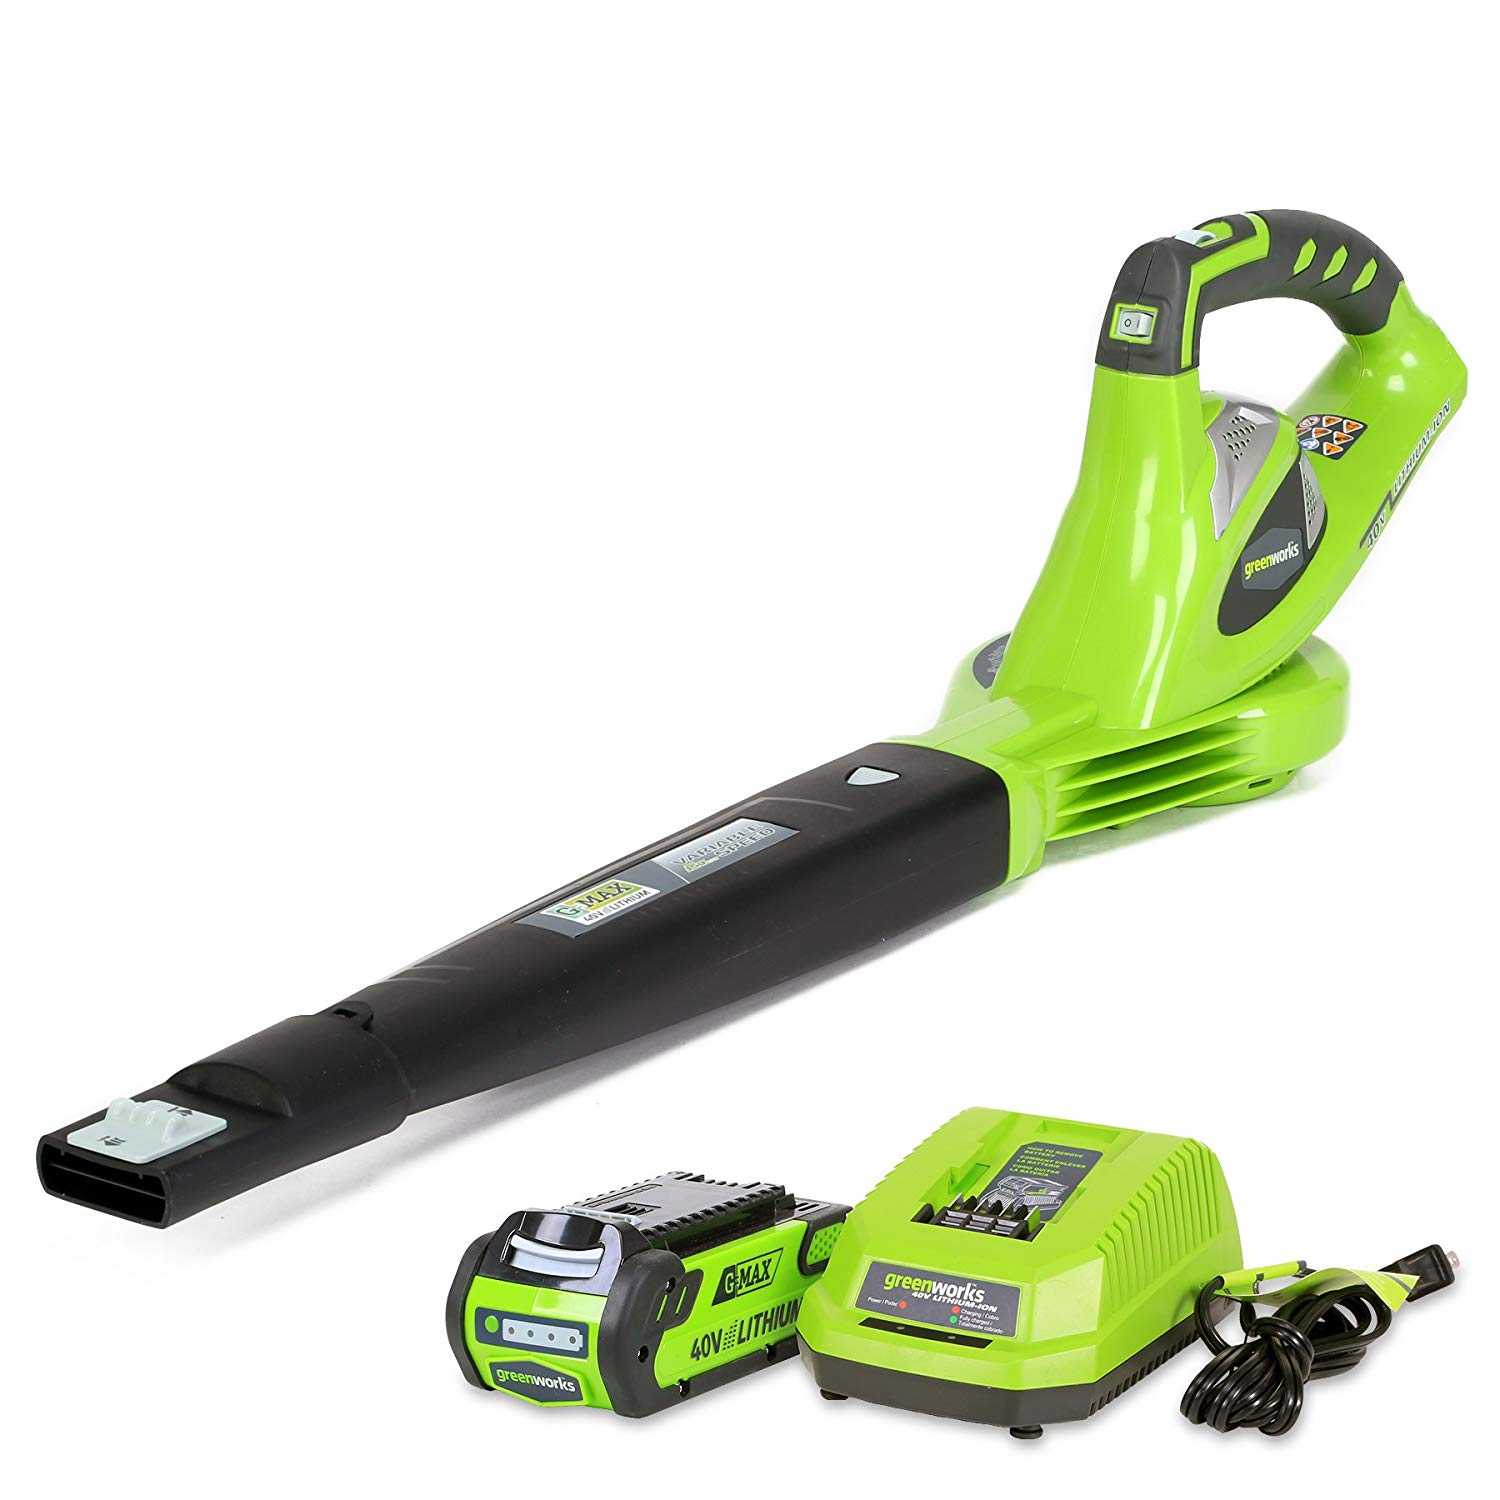 Greenworks Variable Cordless Leaf Blower